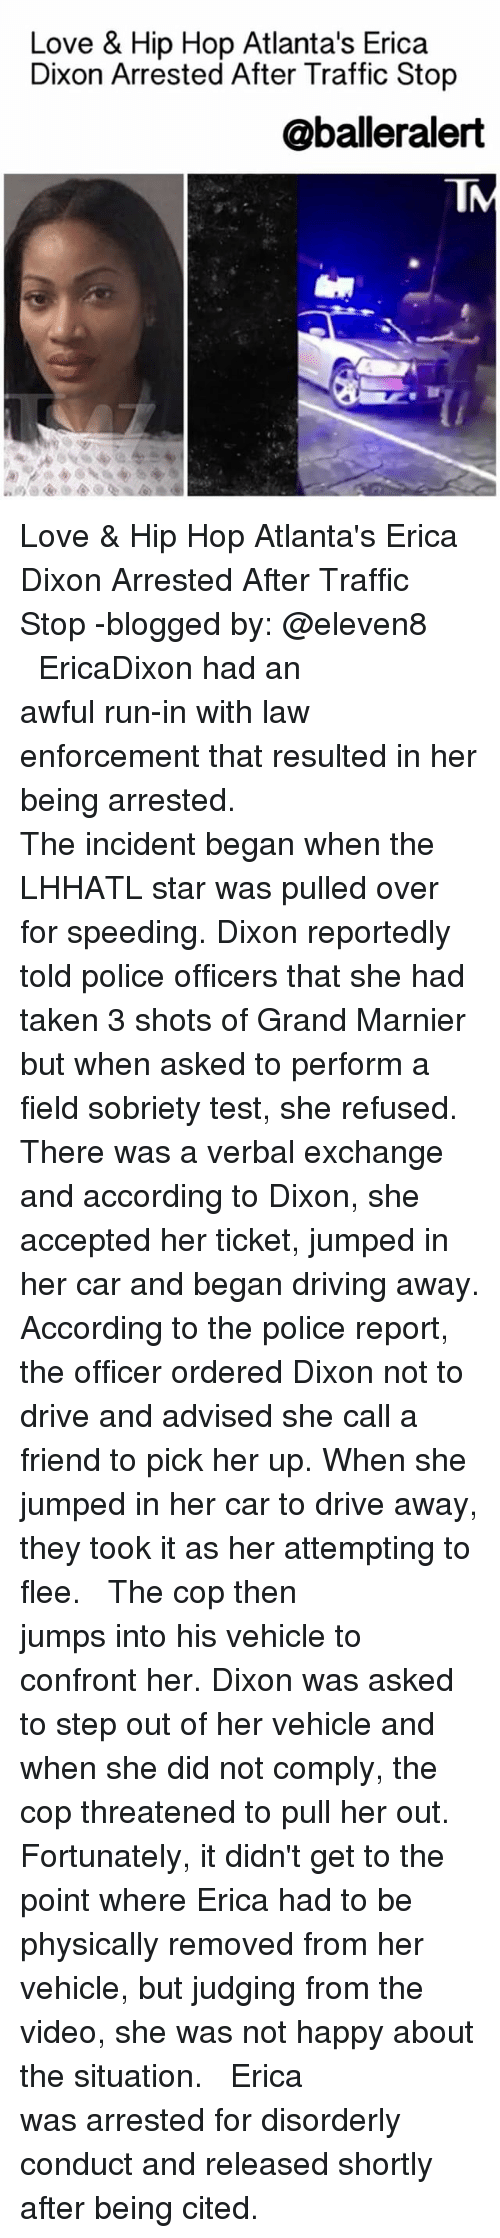 Sobriety: Love & Hip Hop Atlanta's Erica  Dixon Arrested After Traffic Stop  @balleralert Love & Hip Hop Atlanta's Erica Dixon Arrested After Traffic Stop -blogged by: @eleven8 ⠀⠀⠀⠀⠀⠀⠀⠀⠀ ⠀⠀⠀⠀⠀⠀⠀⠀⠀ EricaDixon had an awful run-in with law enforcement that resulted in her being arrested. ⠀⠀⠀⠀⠀⠀⠀⠀⠀ ⠀⠀⠀⠀⠀⠀⠀⠀⠀ The incident began when the LHHATL star was pulled over for speeding. Dixon reportedly told police officers that she had taken 3 shots of Grand Marnier but when asked to perform a field sobriety test, she refused. There was a verbal exchange and according to Dixon, she accepted her ticket, jumped in her car and began driving away. According to the police report, the officer ordered Dixon not to drive and advised she call a friend to pick her up. When she jumped in her car to drive away, they took it as her attempting to flee. ⠀⠀⠀⠀⠀⠀⠀⠀⠀ ⠀⠀⠀⠀⠀⠀⠀⠀⠀ The cop then jumps into his vehicle to confront her. Dixon was asked to step out of her vehicle and when she did not comply, the cop threatened to pull her out. Fortunately, it didn't get to the point where Erica had to be physically removed from her vehicle, but judging from the video, she was not happy about the situation. ⠀⠀⠀⠀⠀⠀⠀⠀⠀ ⠀⠀⠀⠀⠀⠀⠀⠀⠀ Erica was arrested for disorderly conduct and released shortly after being cited.